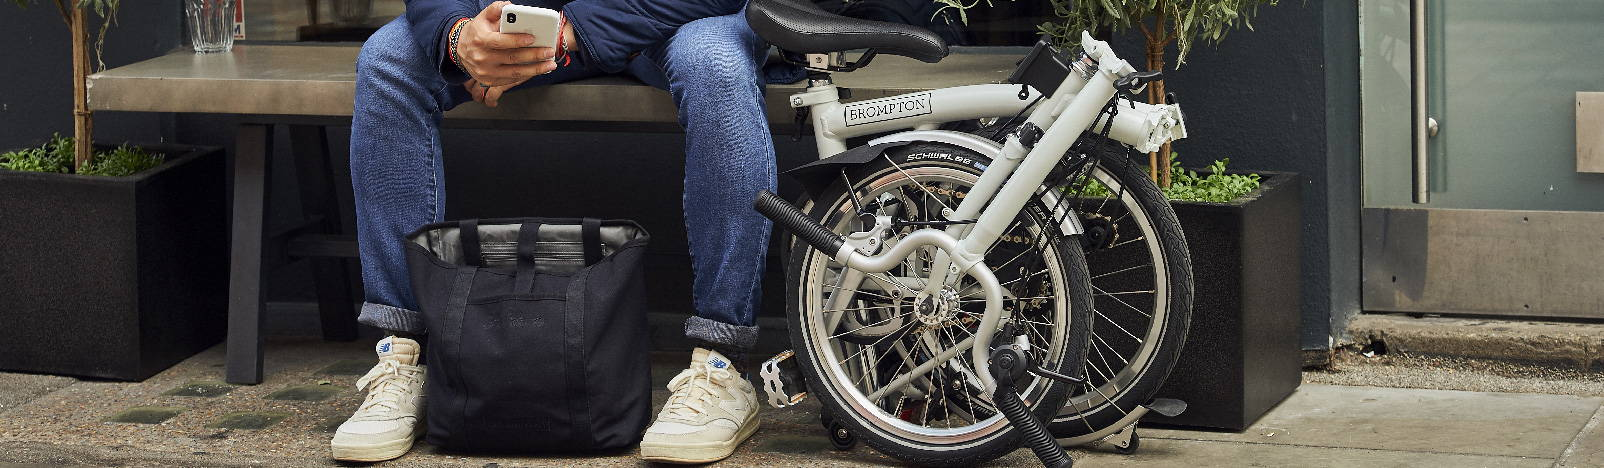 Brompton folding bikes are great for your day trips and commutes to work.